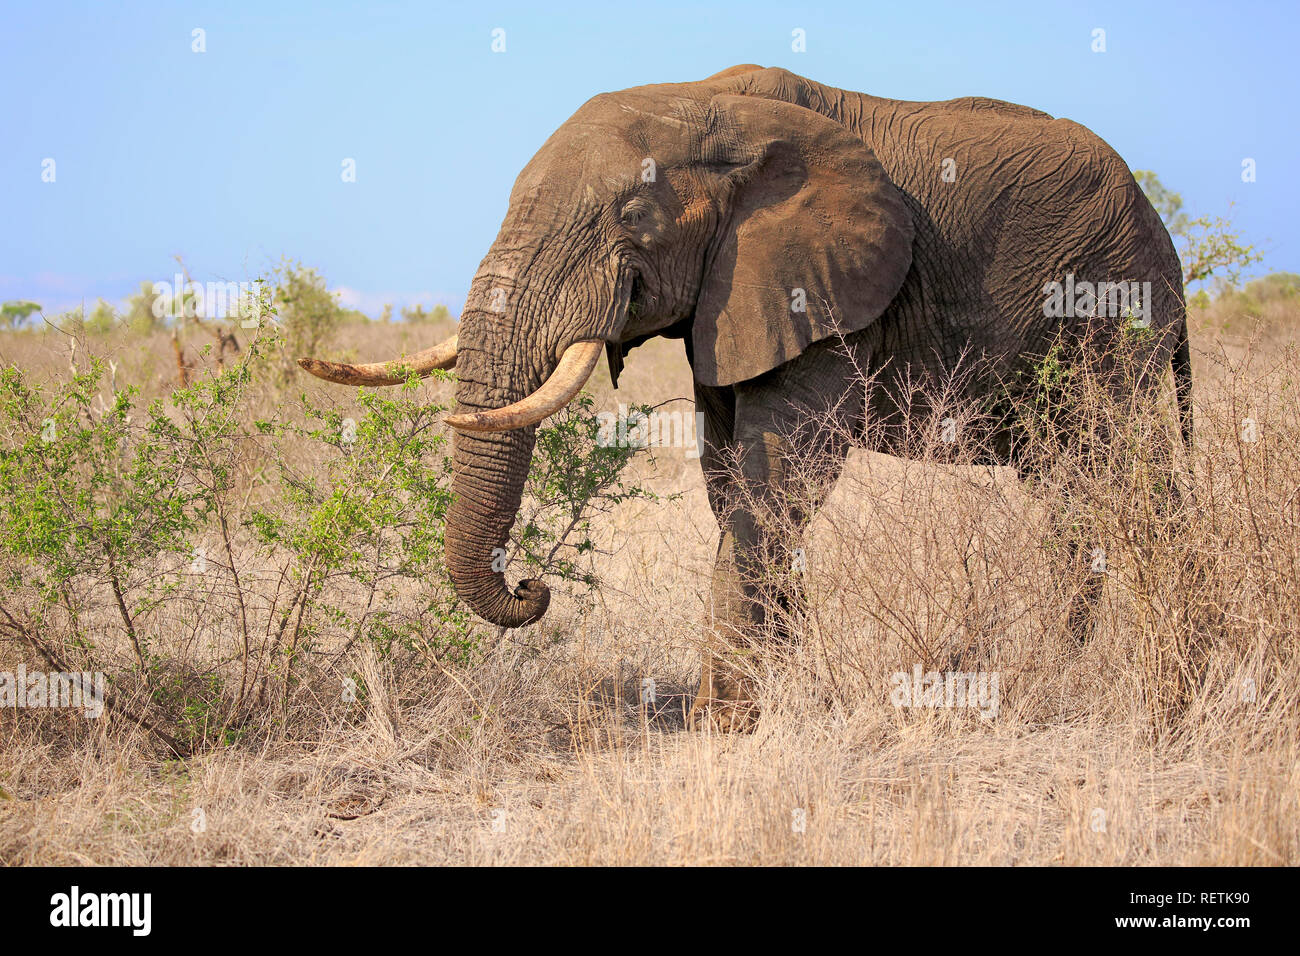 African Elephant, adult male,, Sabi Sand Game Reserve, Kruger Nationalpark, South Africa, Africa, (Loxodonta africana) - Stock Image